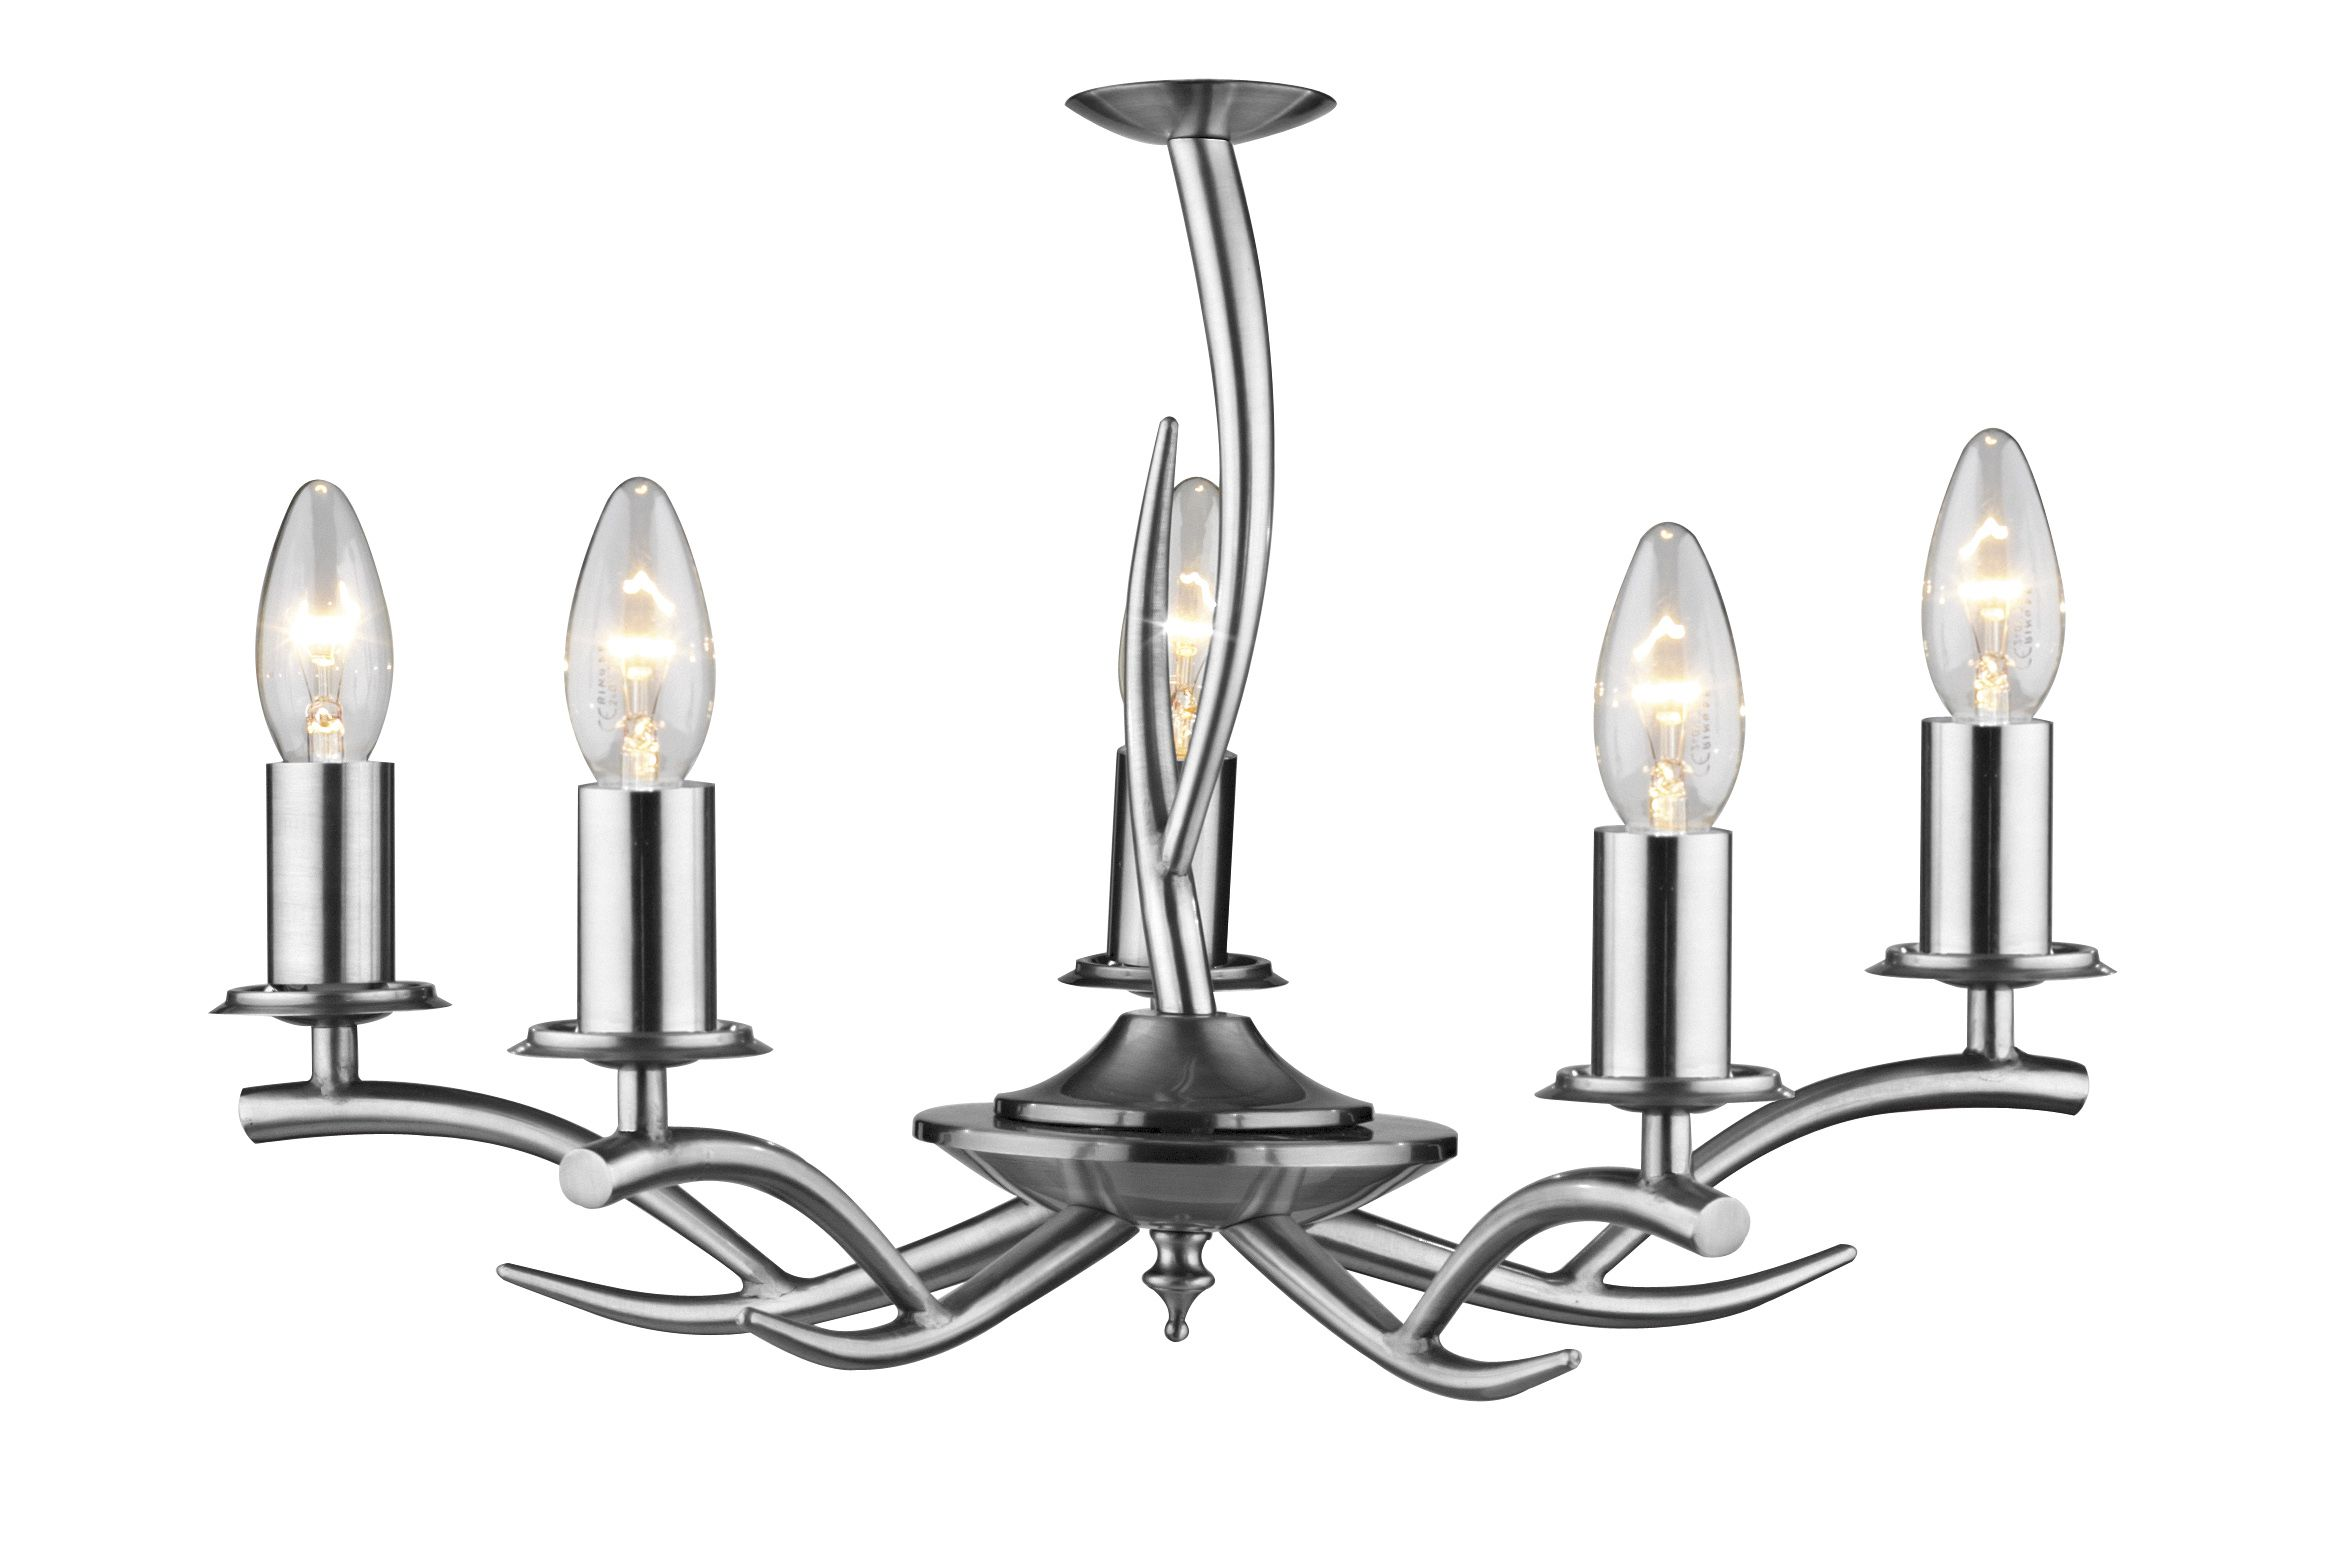 0 3 Elka 5 Light Satin Chrome Ceiling Light Class 2 Double